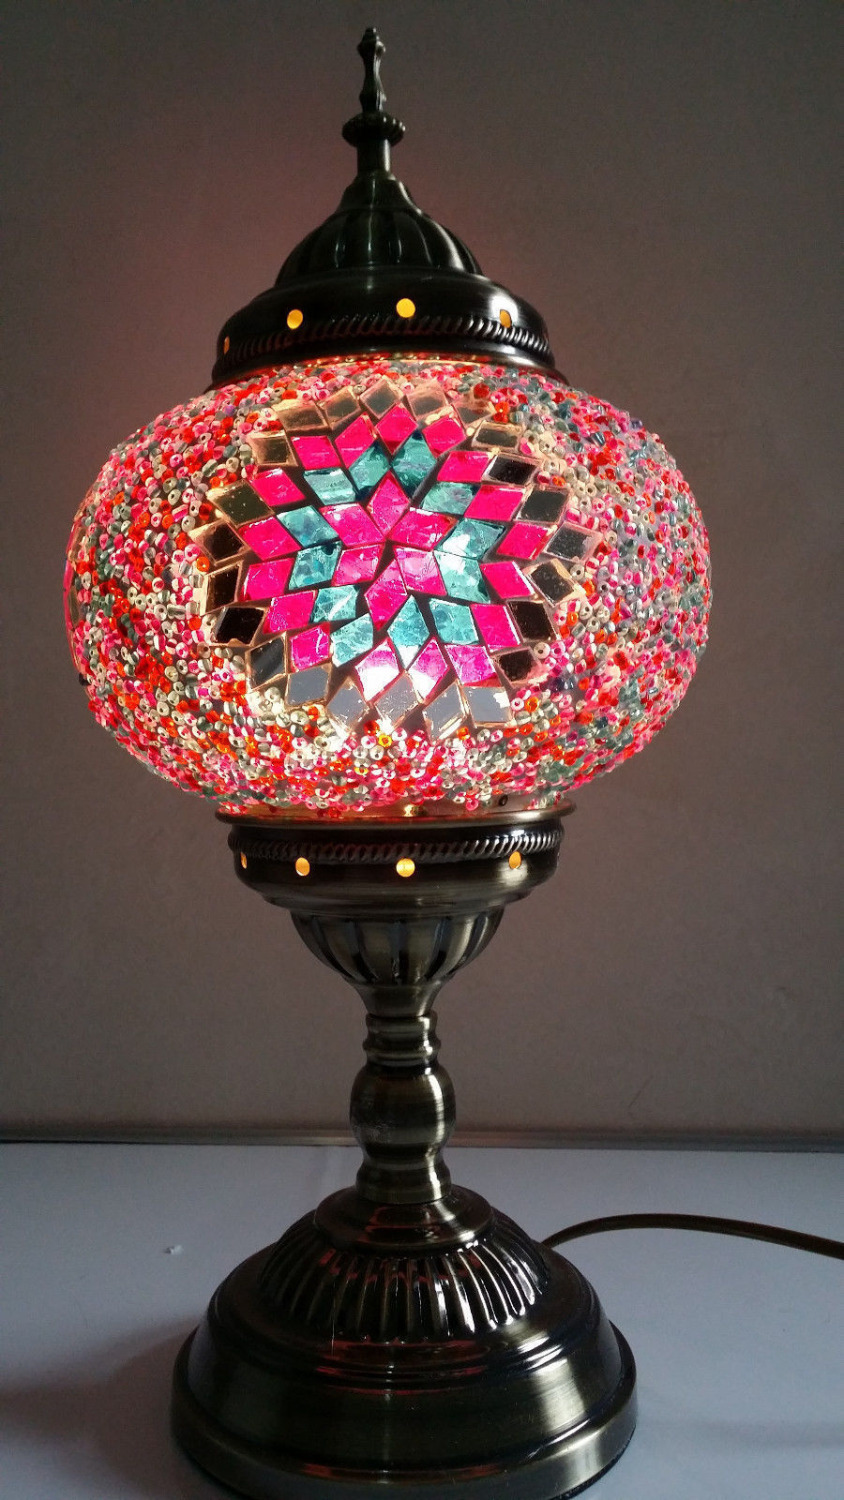 lamps fixtures best lighting outdoor hanging ethnic lamp uk of medium floor lantern to white style moroccan place table candle light size lights chandeliers buy bedside lanterns